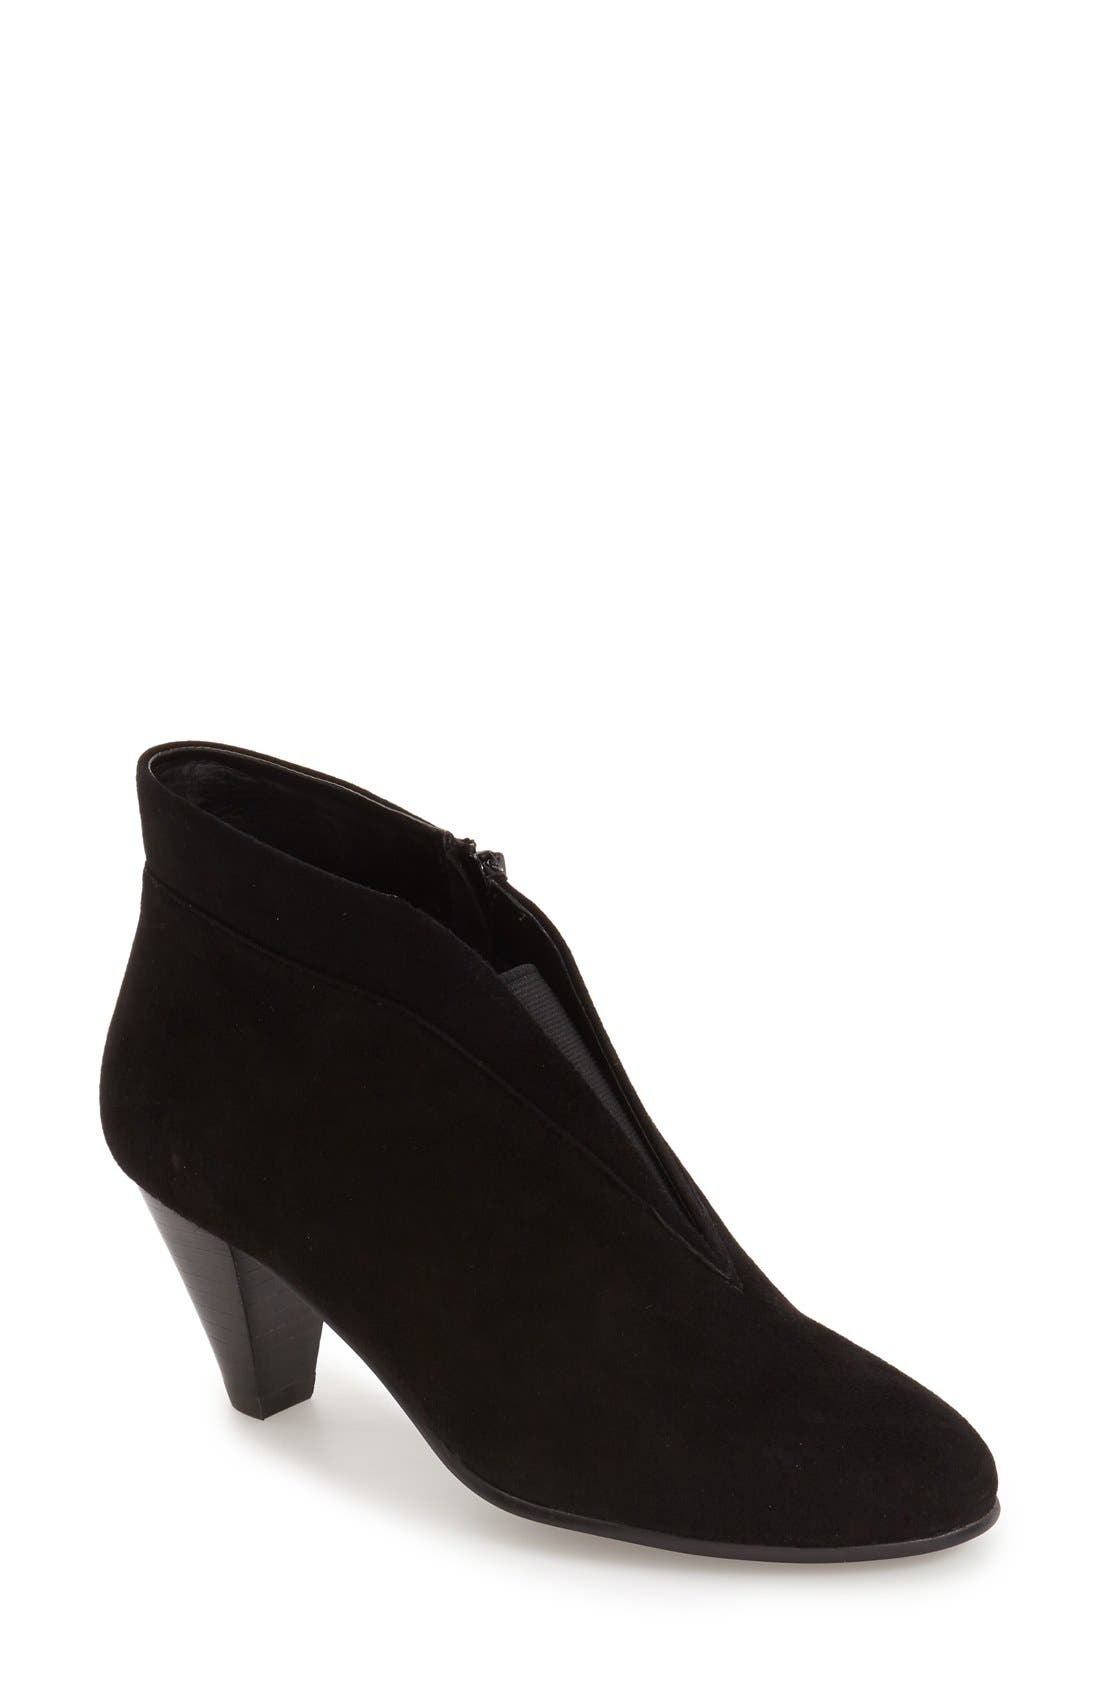 'Natalie' V-Cut Zip Bootie,                             Main thumbnail 1, color,                             BLACK SUEDE